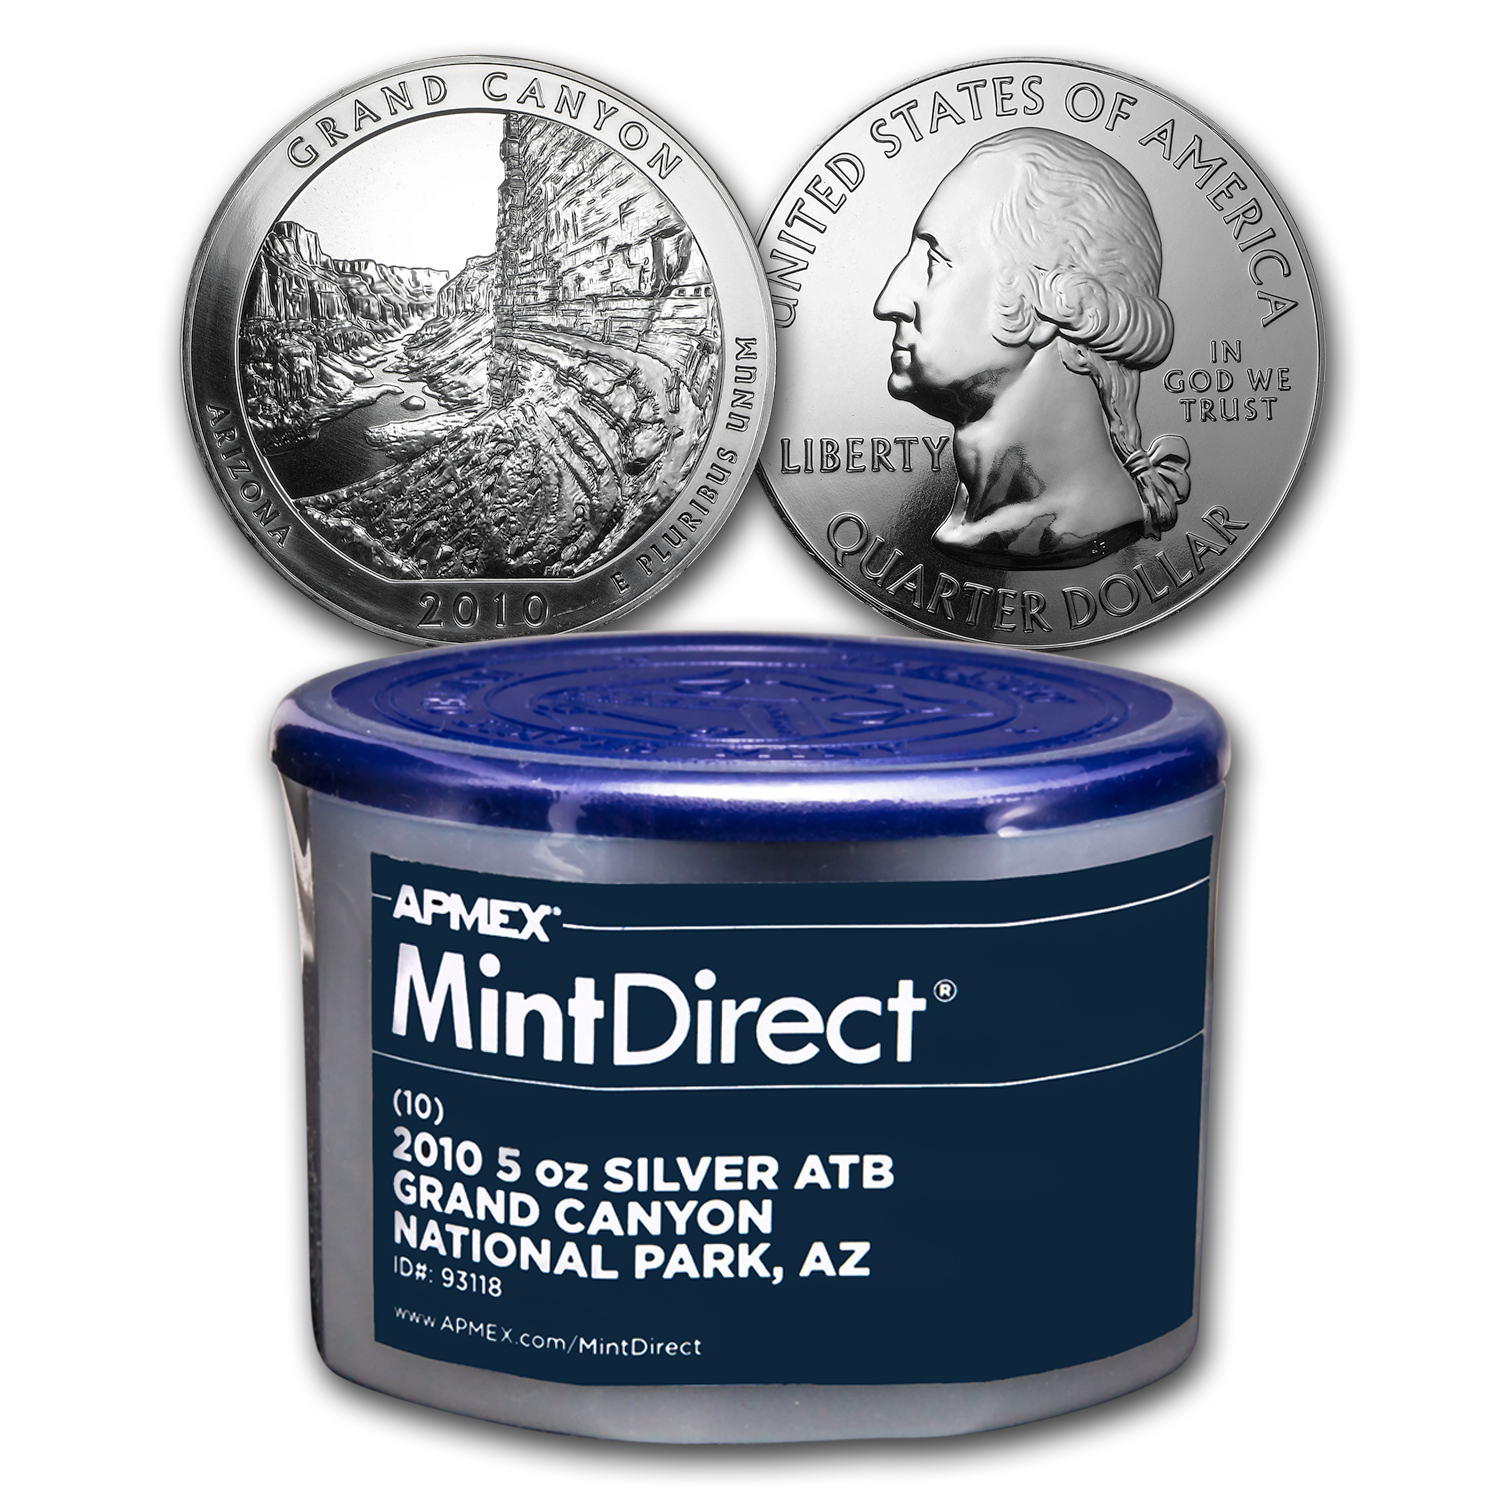 2010 5 oz Silver ATB Grand Canyon (10-Coin MintDirect® Tube)